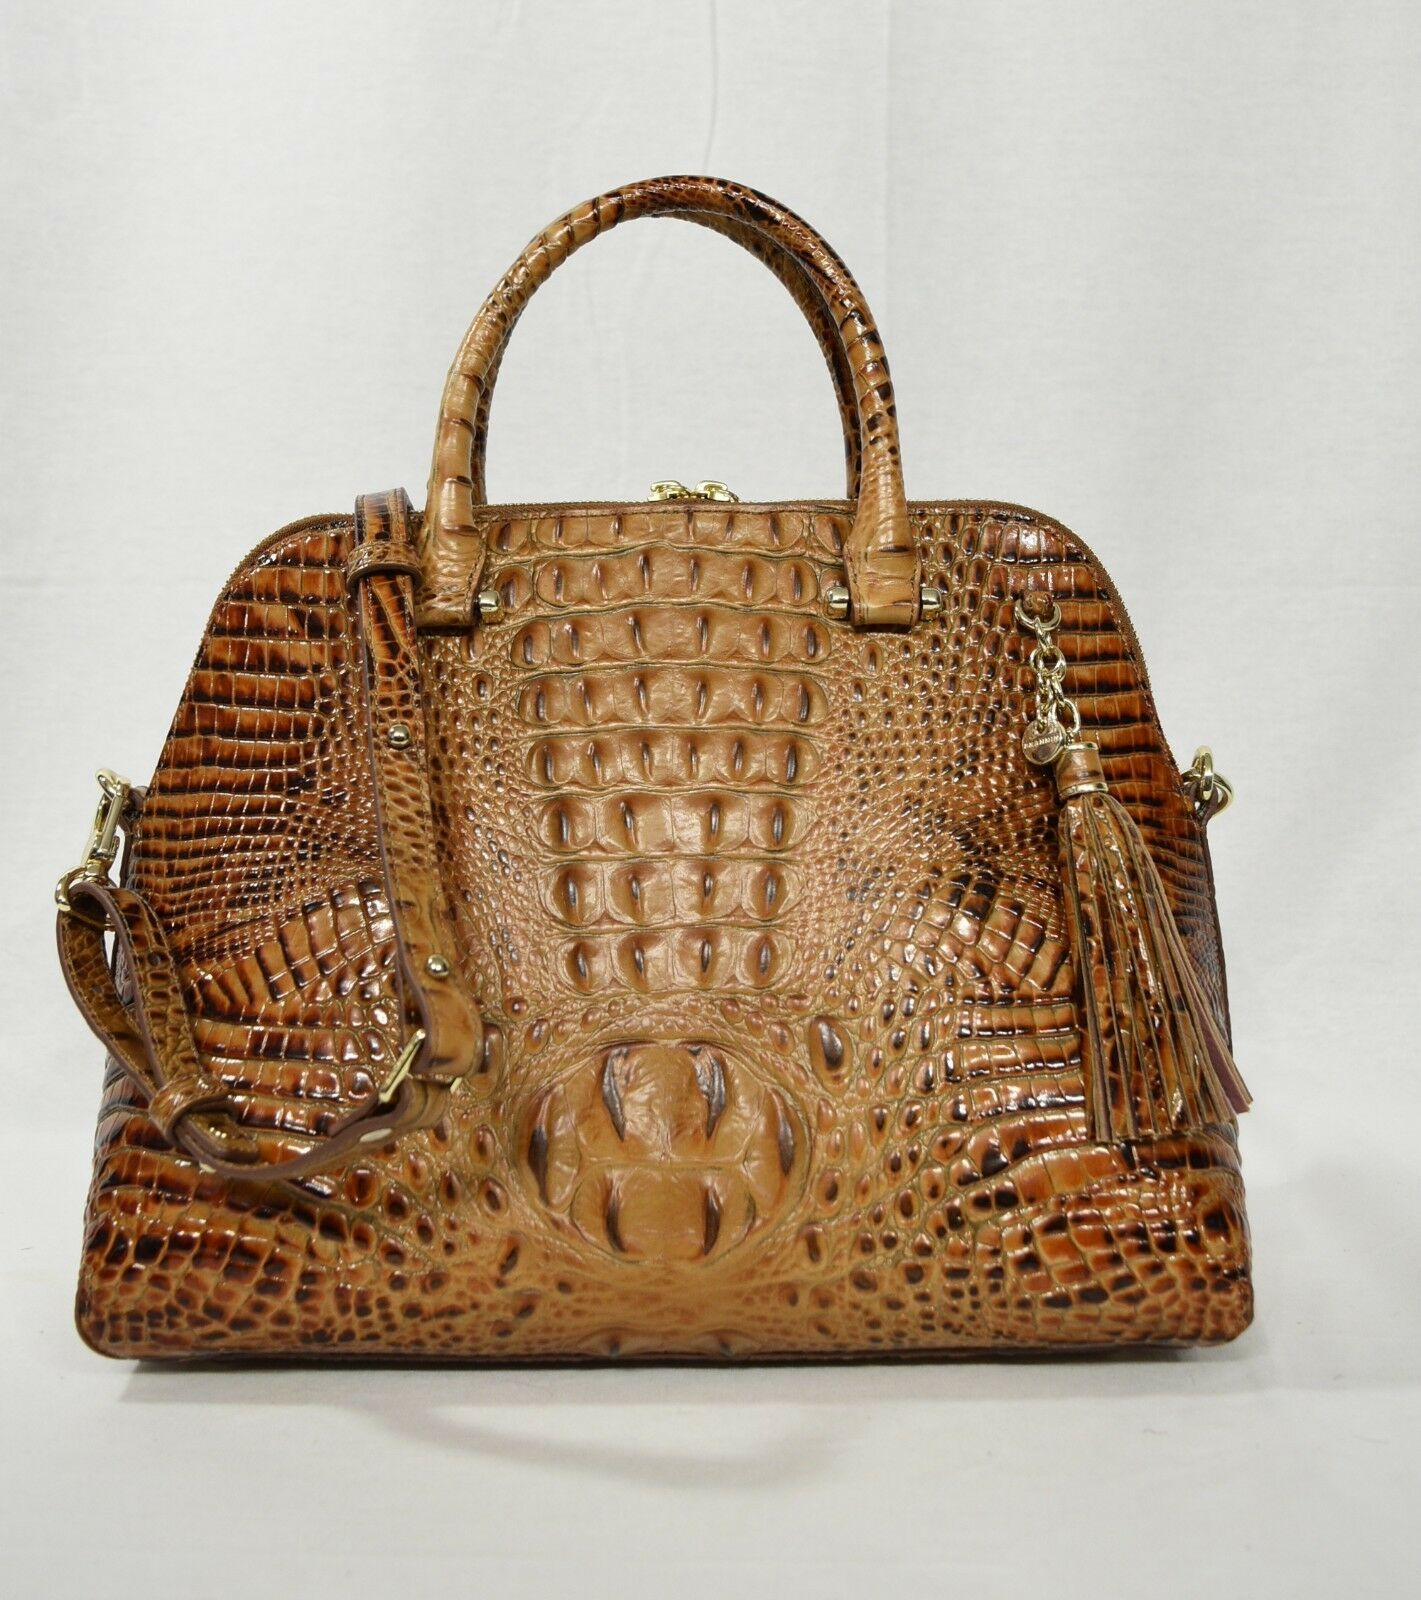 Primary image for NWT Brahmin Sydney Leather Satchel/Shoulder Bag in Toasted Almond Melbourne